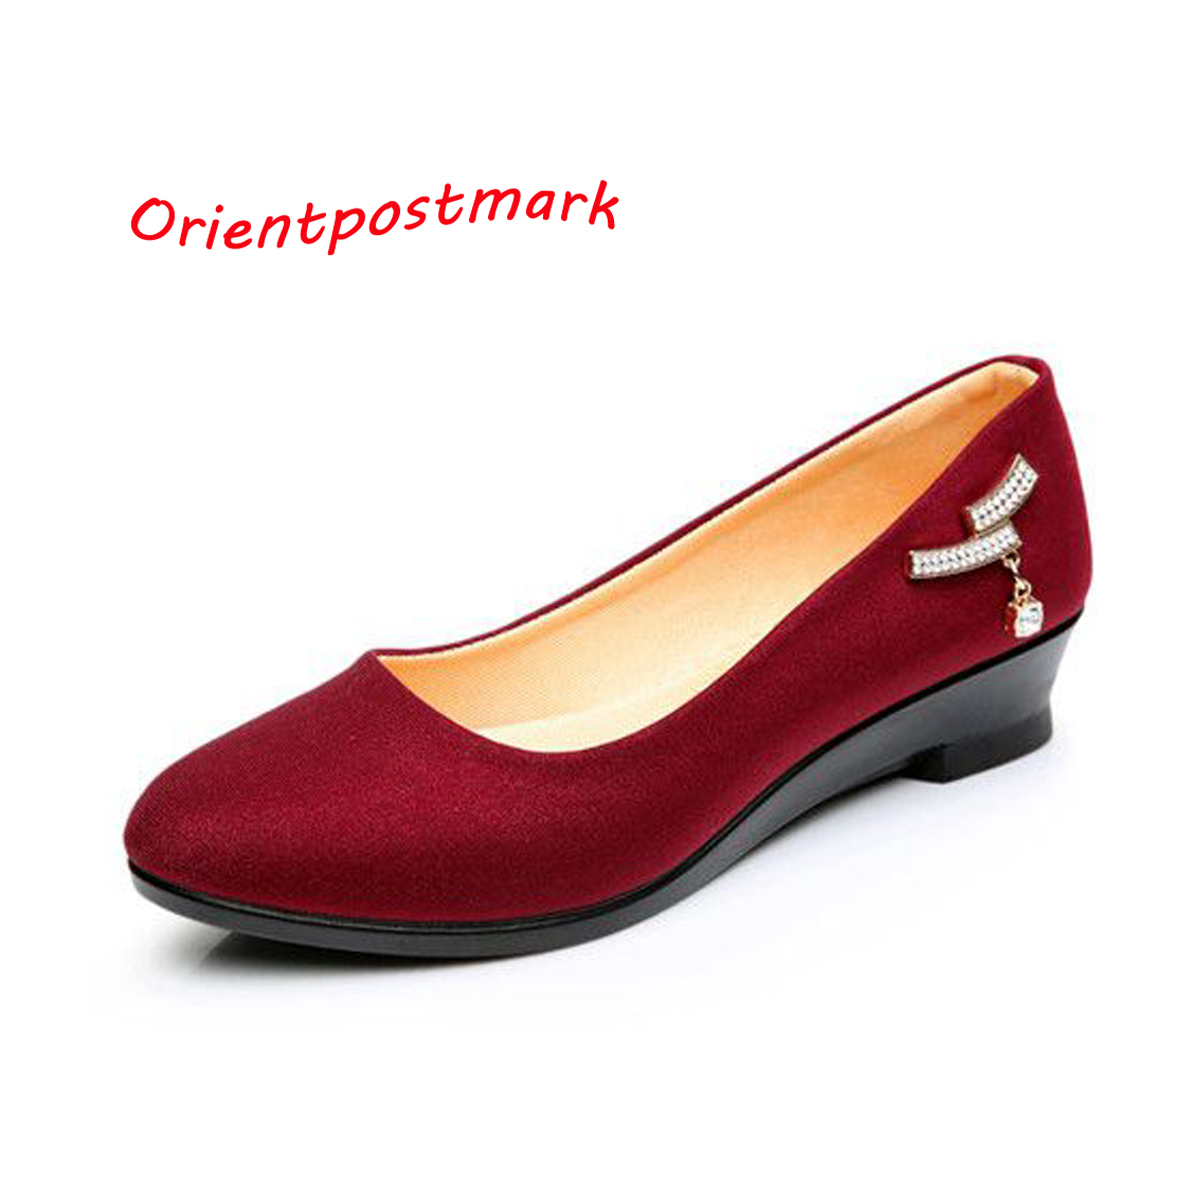 Women Ballet Wedges Shoes Women Shoes for Work Cloth Flats Sweet Loafers Slip On Women's Wedges Shoes Oversize Boat Shoes  women shoes women ballet flats shoes for work flats sweet loafers slip on women s pregnant flat shoes oversize boat shoes d35m25